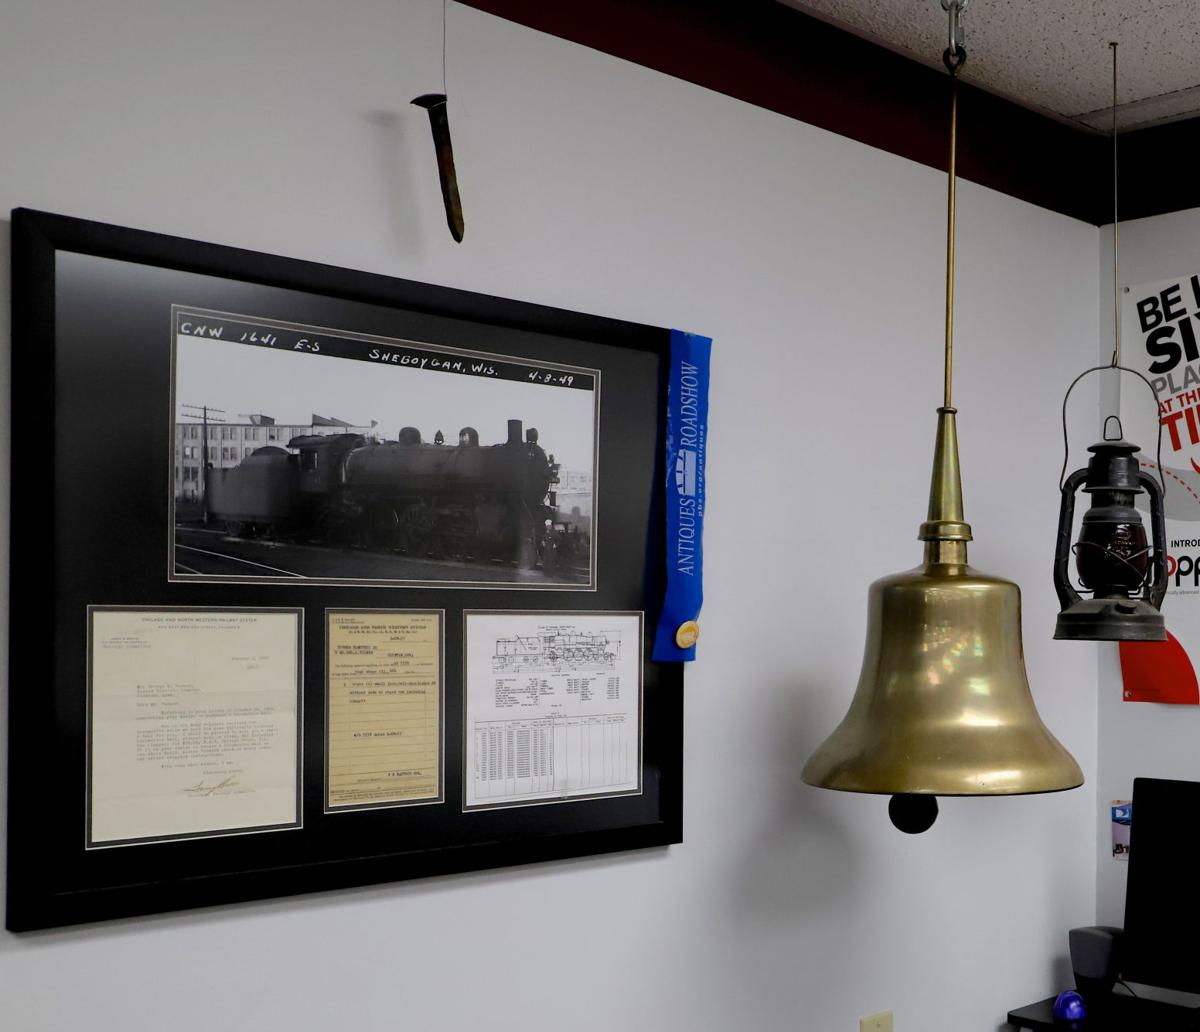 Chicago and Northwestern railroad bell